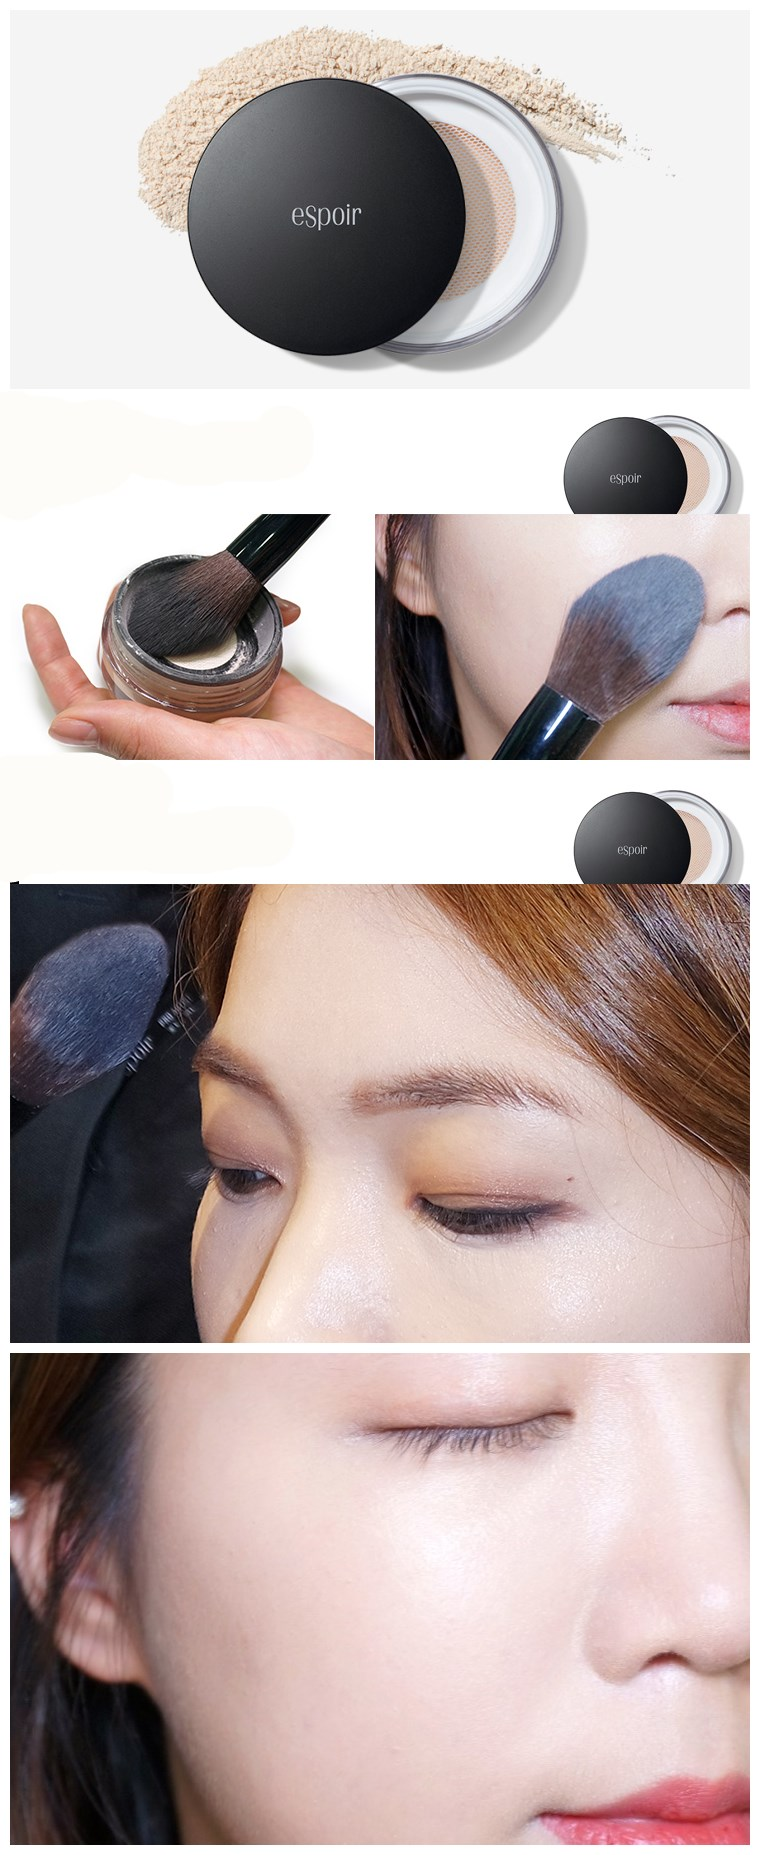 eSpoir Face Prime Silky Finish Powder 絲滑細膩控油定妝碎粉